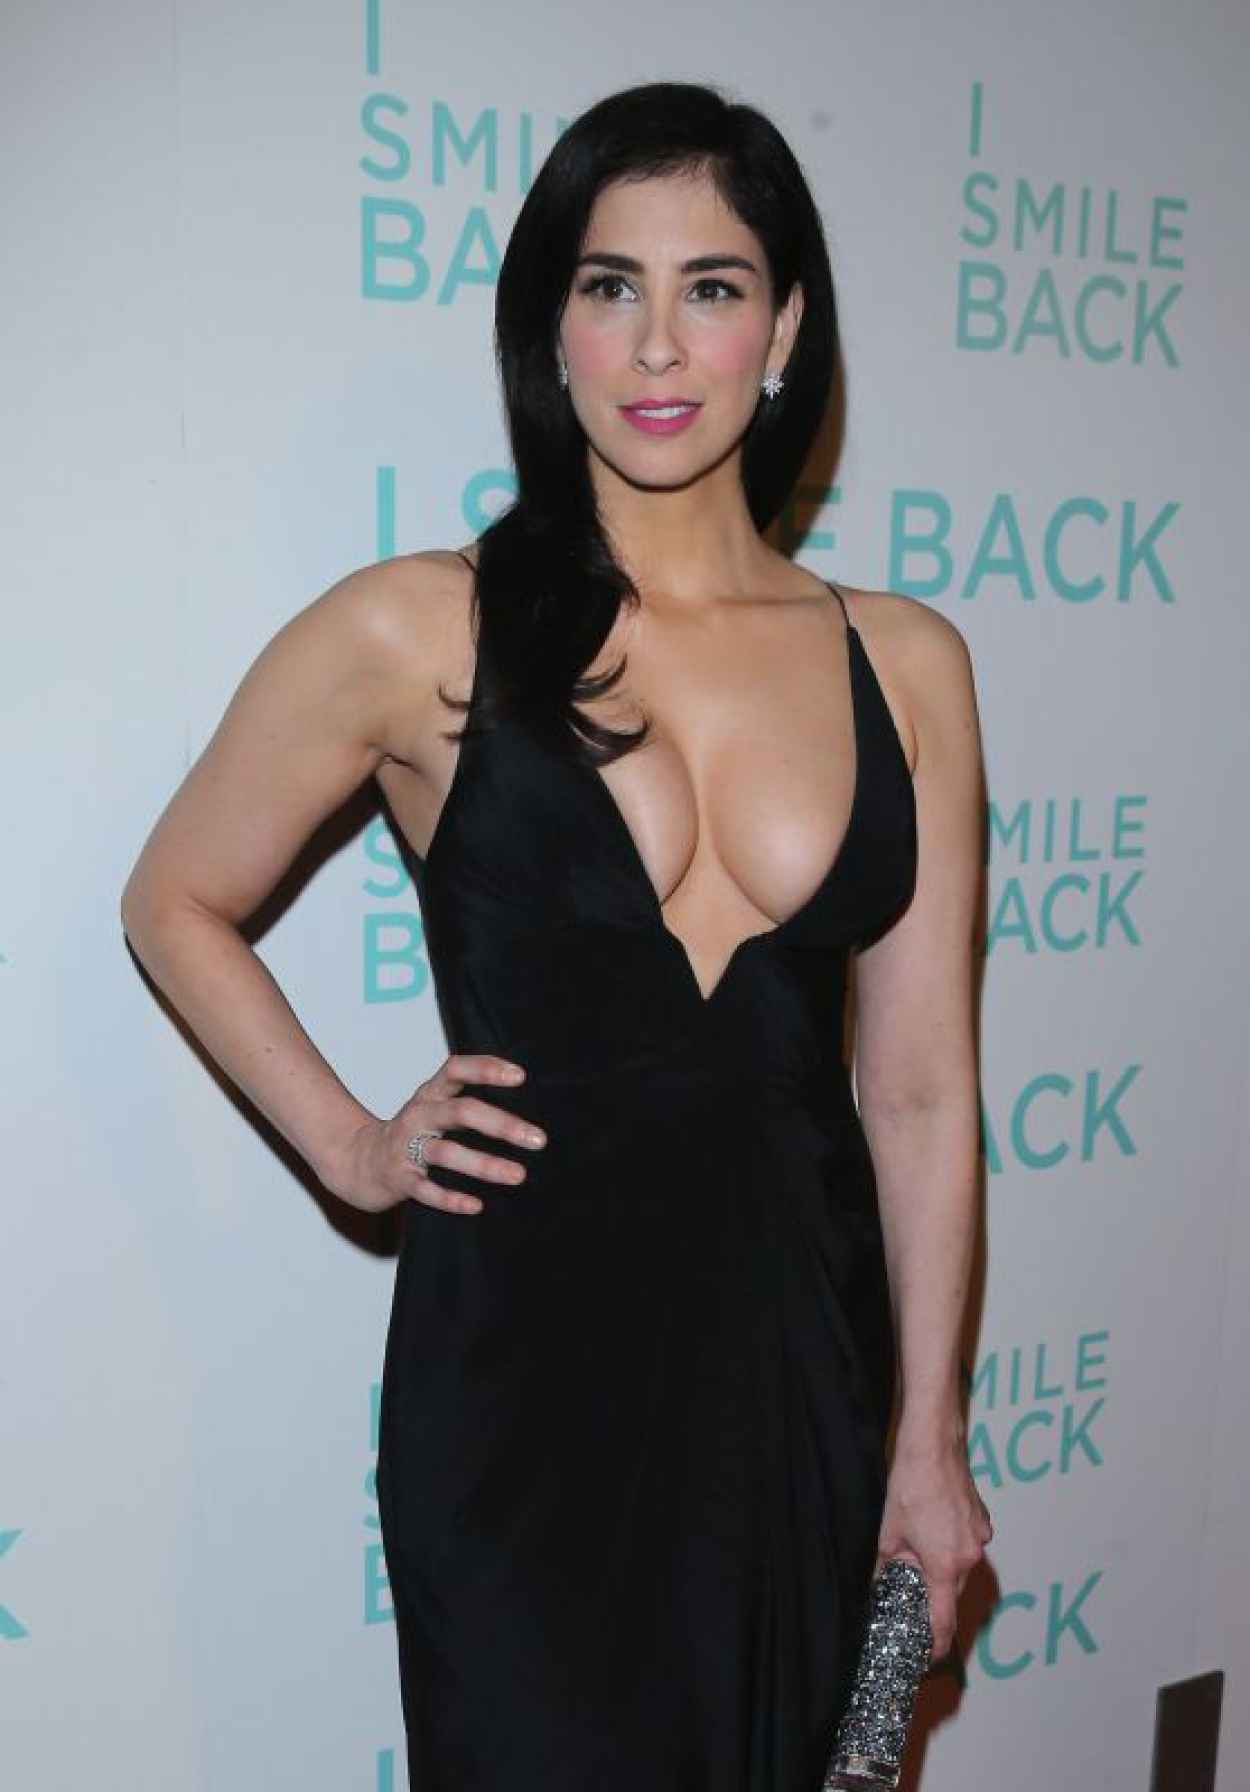 Sarah Silverman - I Smile Back Premiere in Hollywood-1